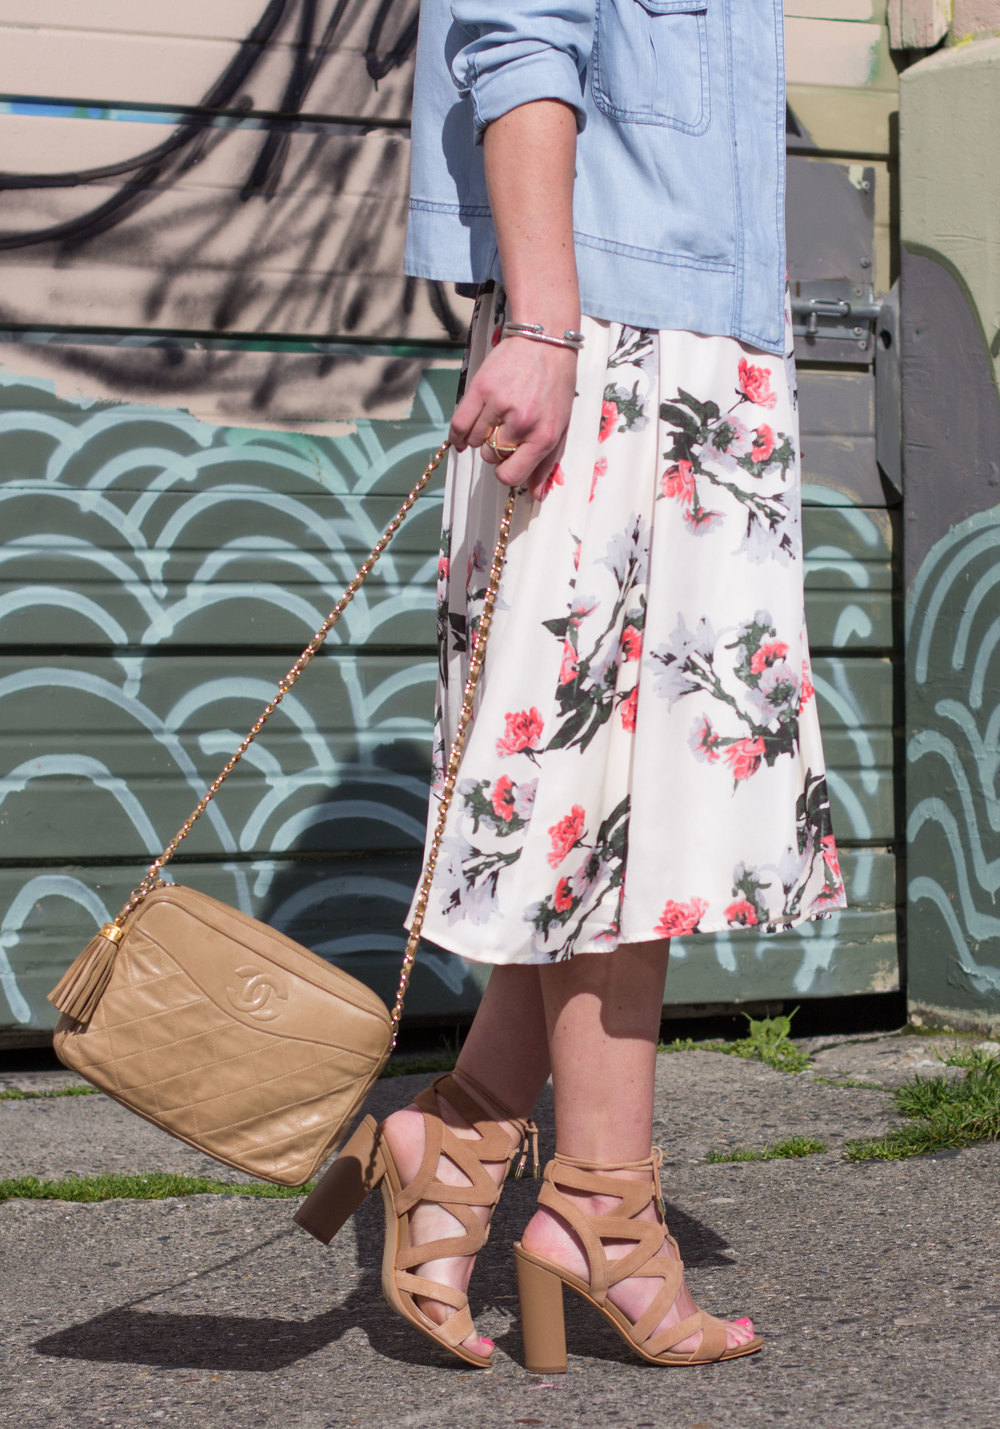 Easter Dress, BB Dakota Emeli Floral Print Midi Dress & Romy Jacket, Sam Edelman Yardley Sandals, Vintage Chanel Bag